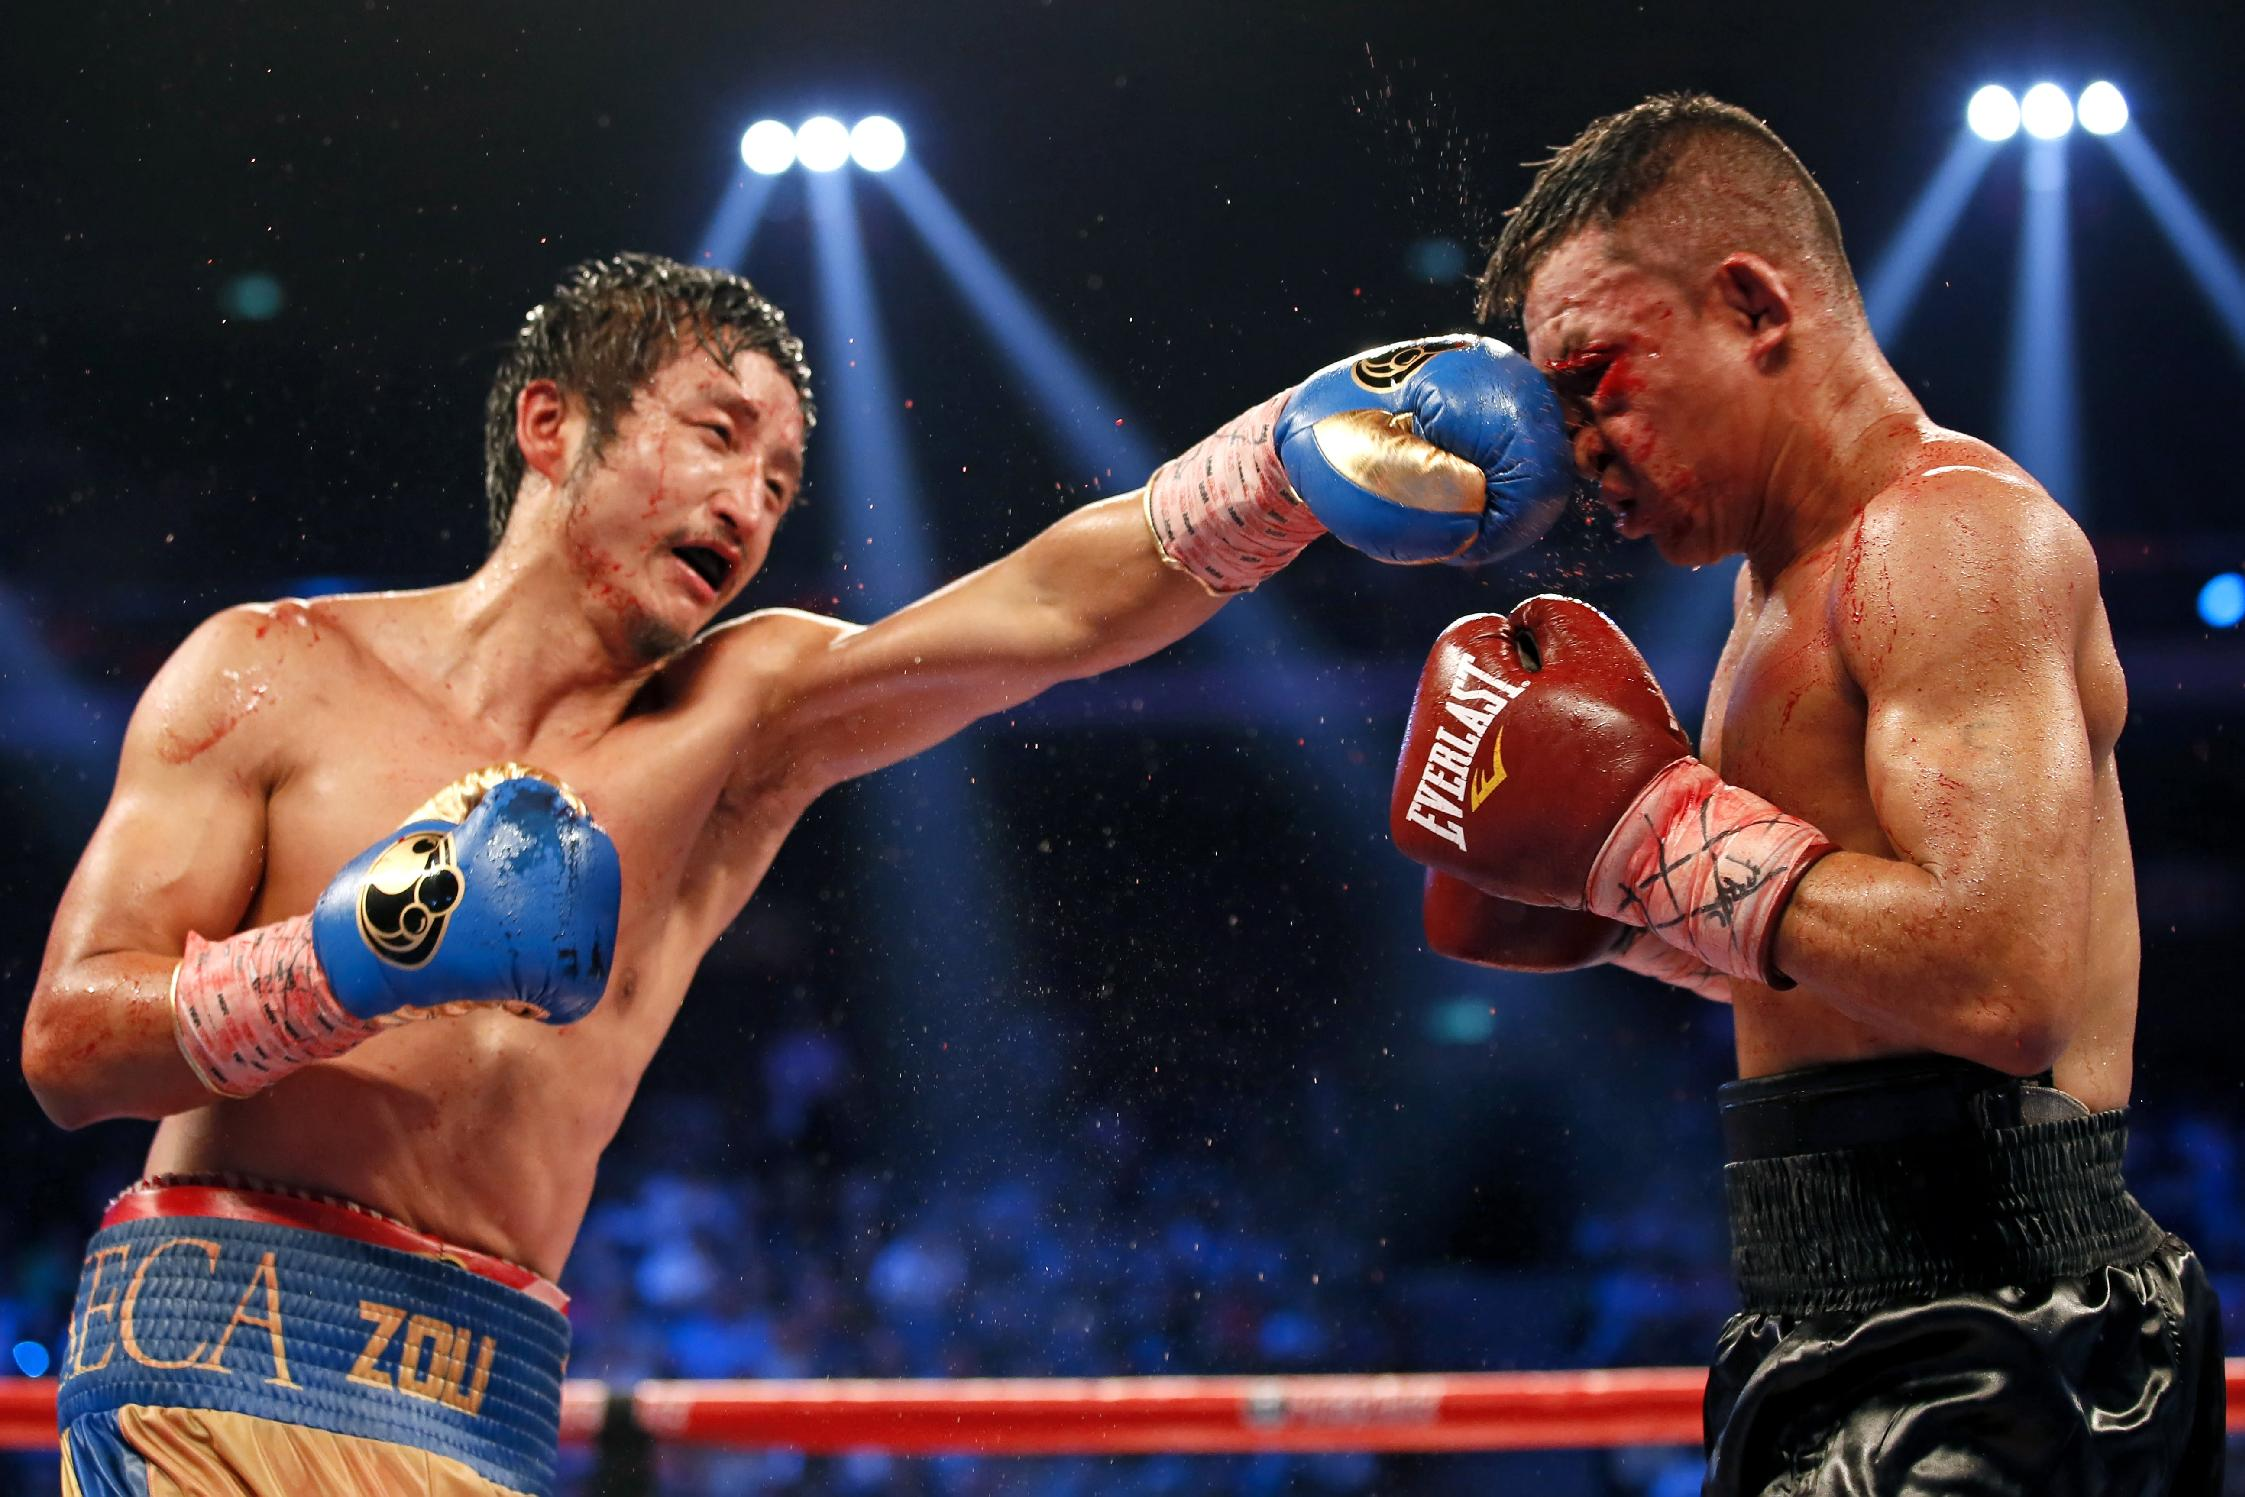 Chinese boxer Zou Shiming, left, delivers a punch to Colombian boxer Luis De La Rosa during the WBO international flyweight title match in Macau, China, Saturday, July 19, 2014. Zou Shiming won the competition